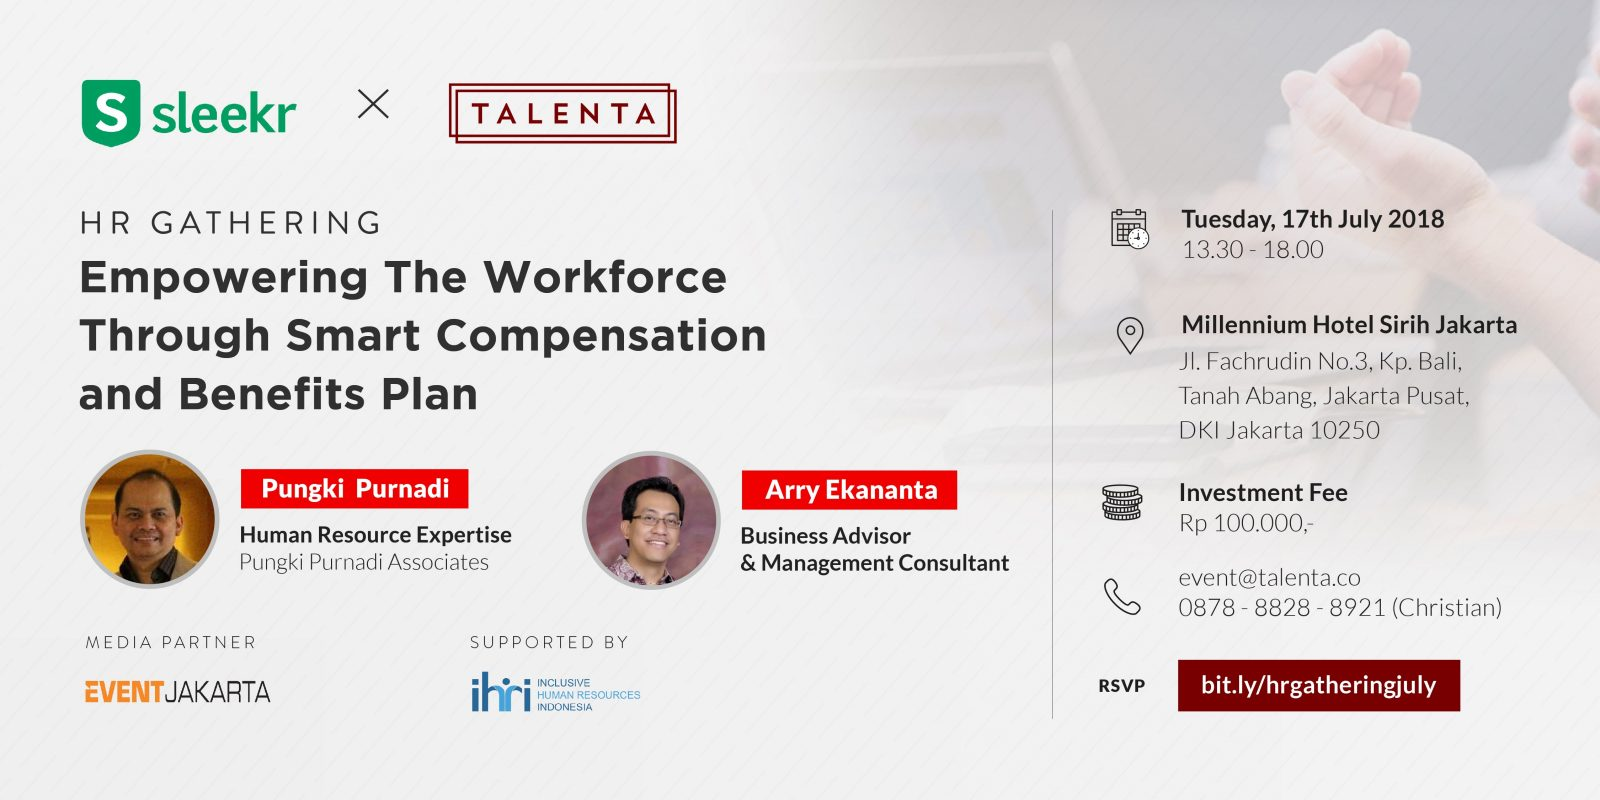 HR Gathering: Empowering The Workforce Through Smart Compensation and Benefits Plan